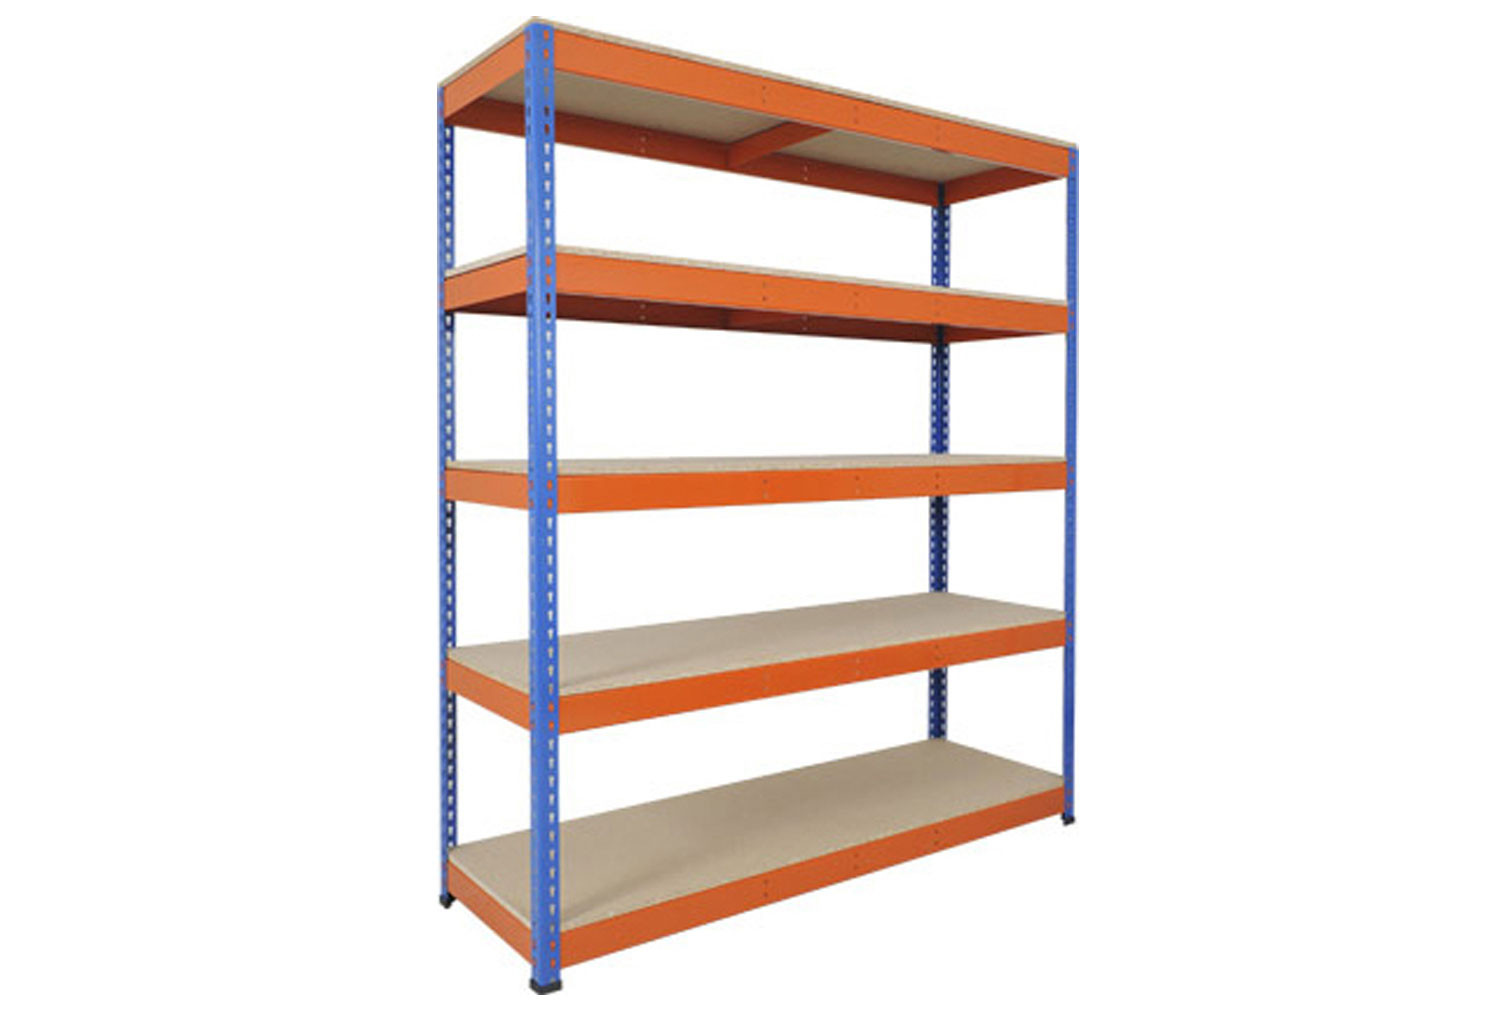 Rapid 1 Heavy Duty Shelving With 5 Chipboard Shelves 2440wx1980h (Blue/Orange)